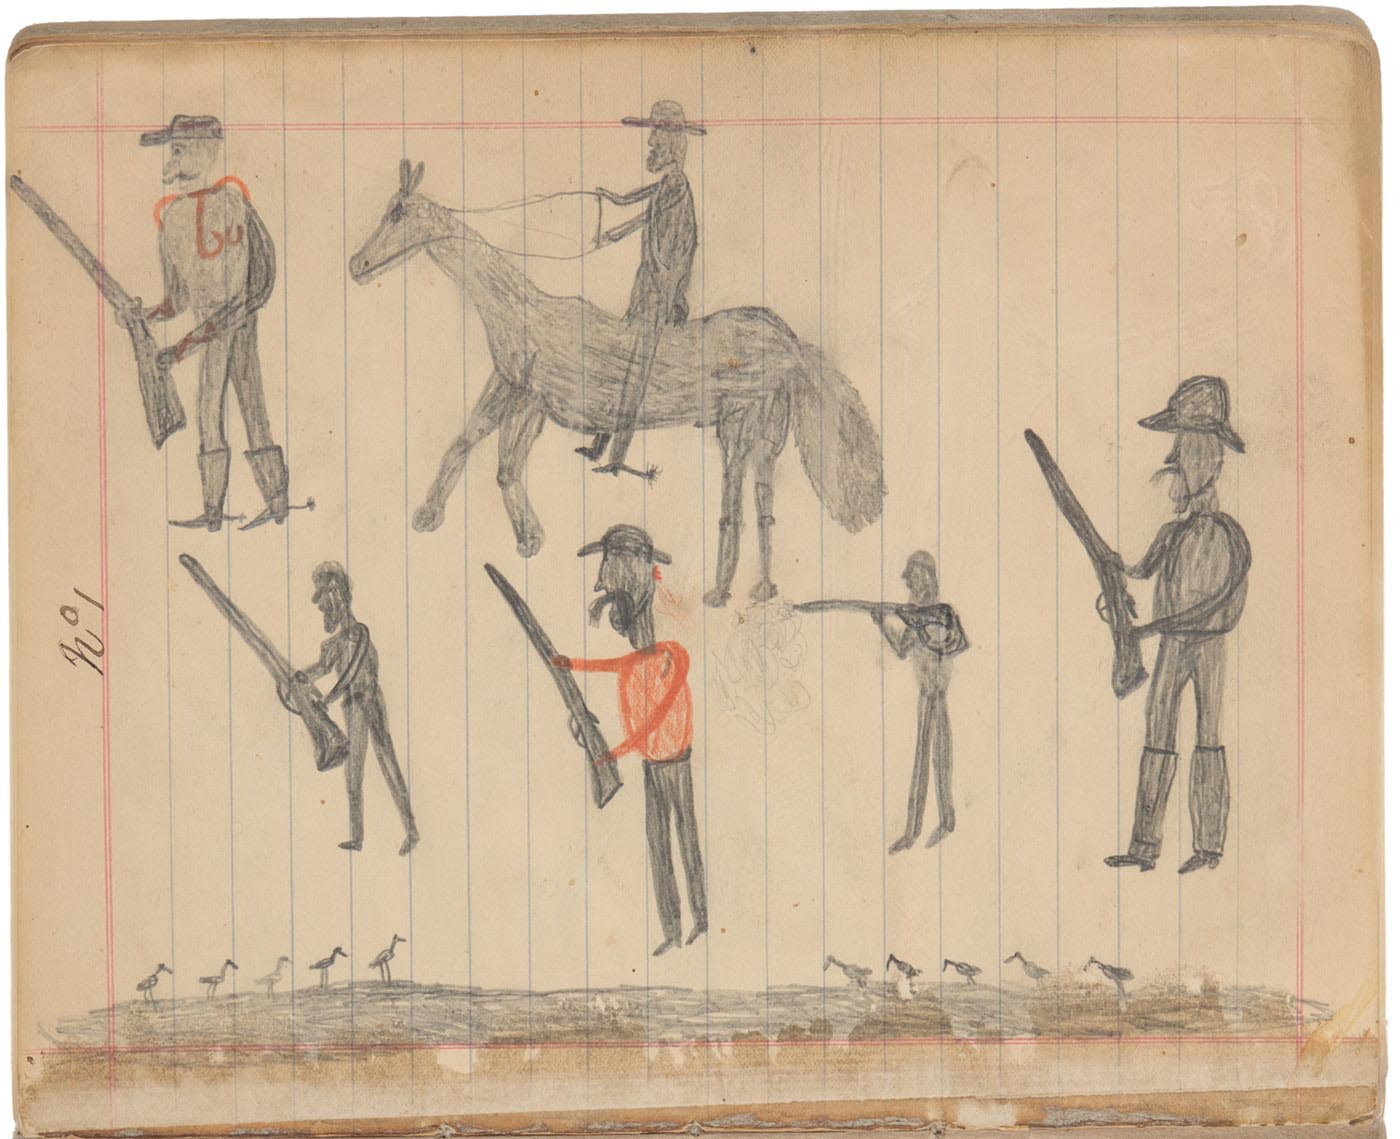 Sketchbook drawings of four figure with guns and one riding horseback - click to view larger image